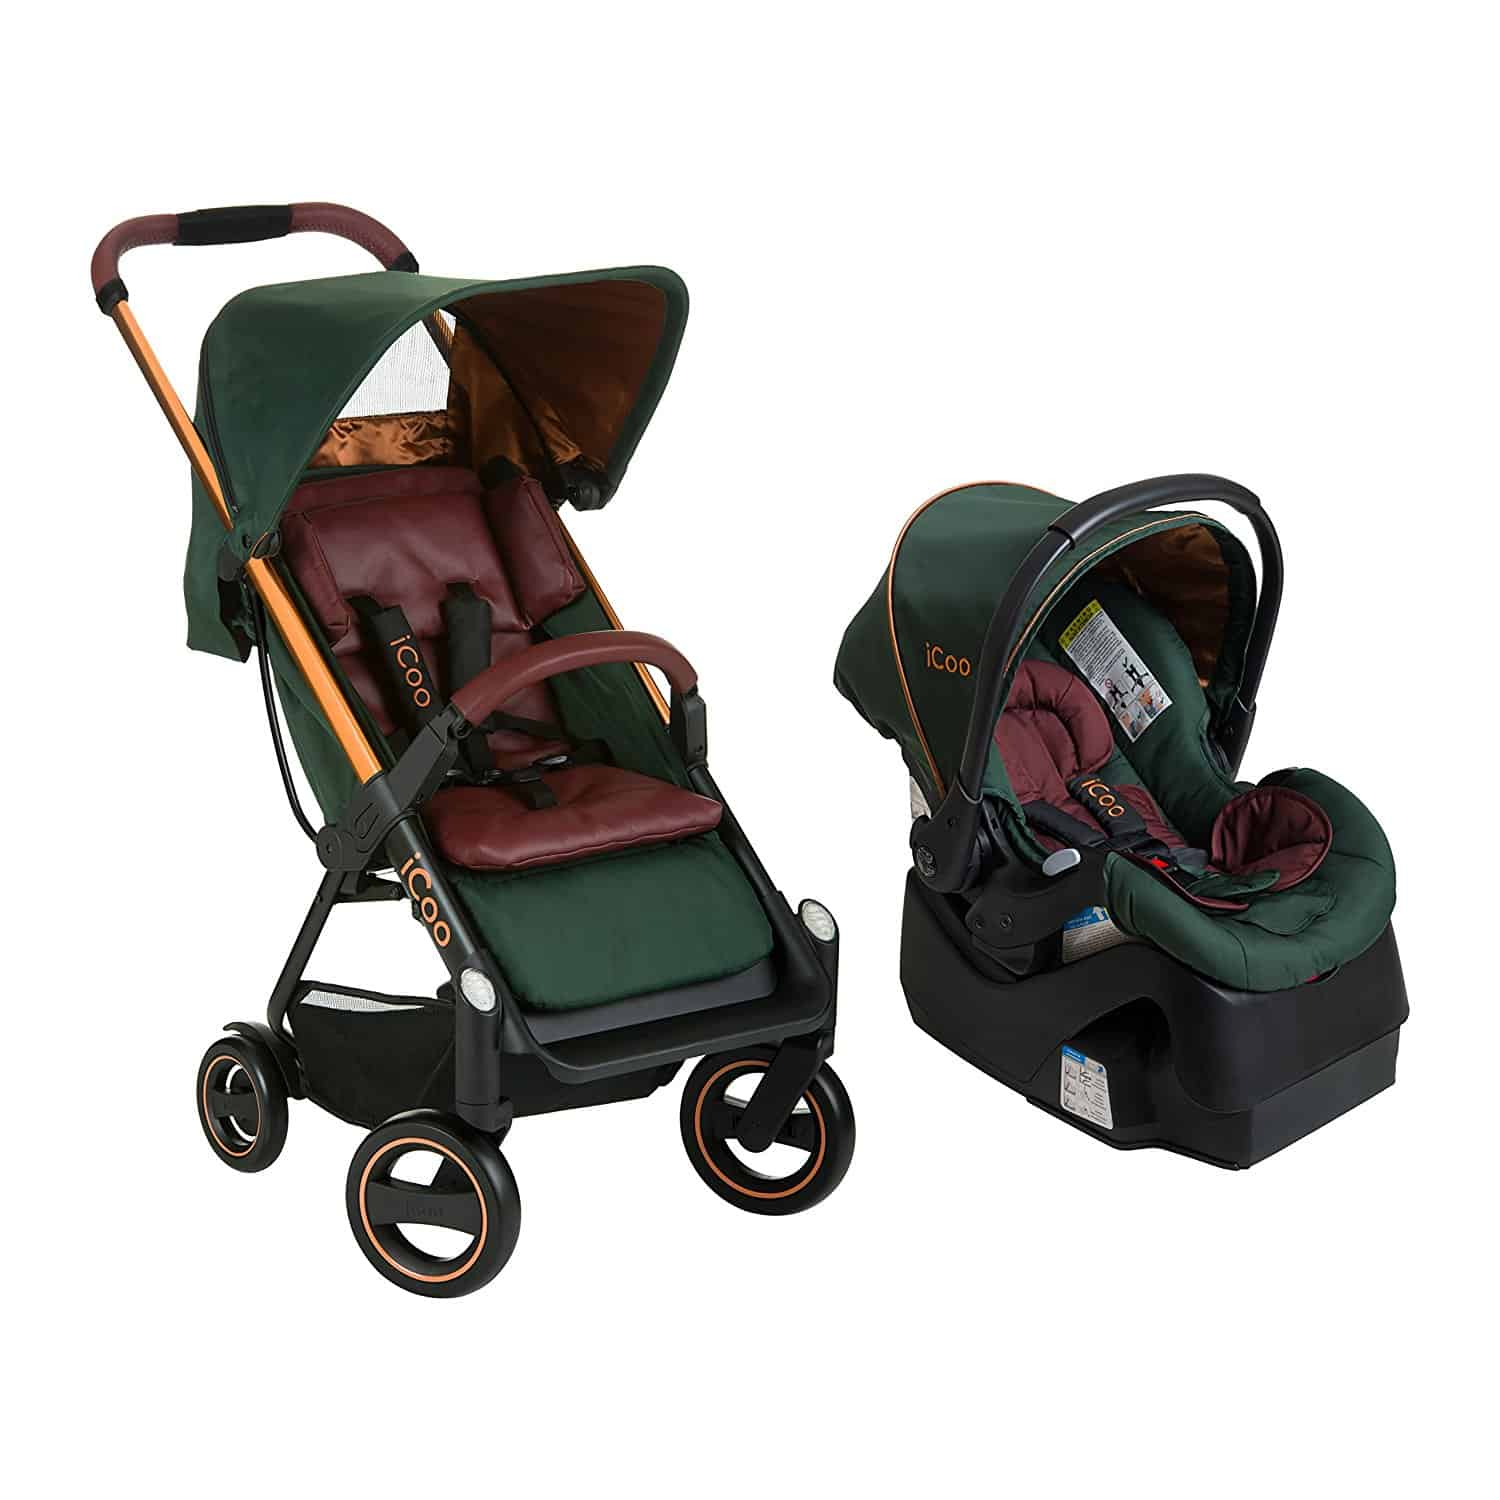 Stroller brand review: iCoo